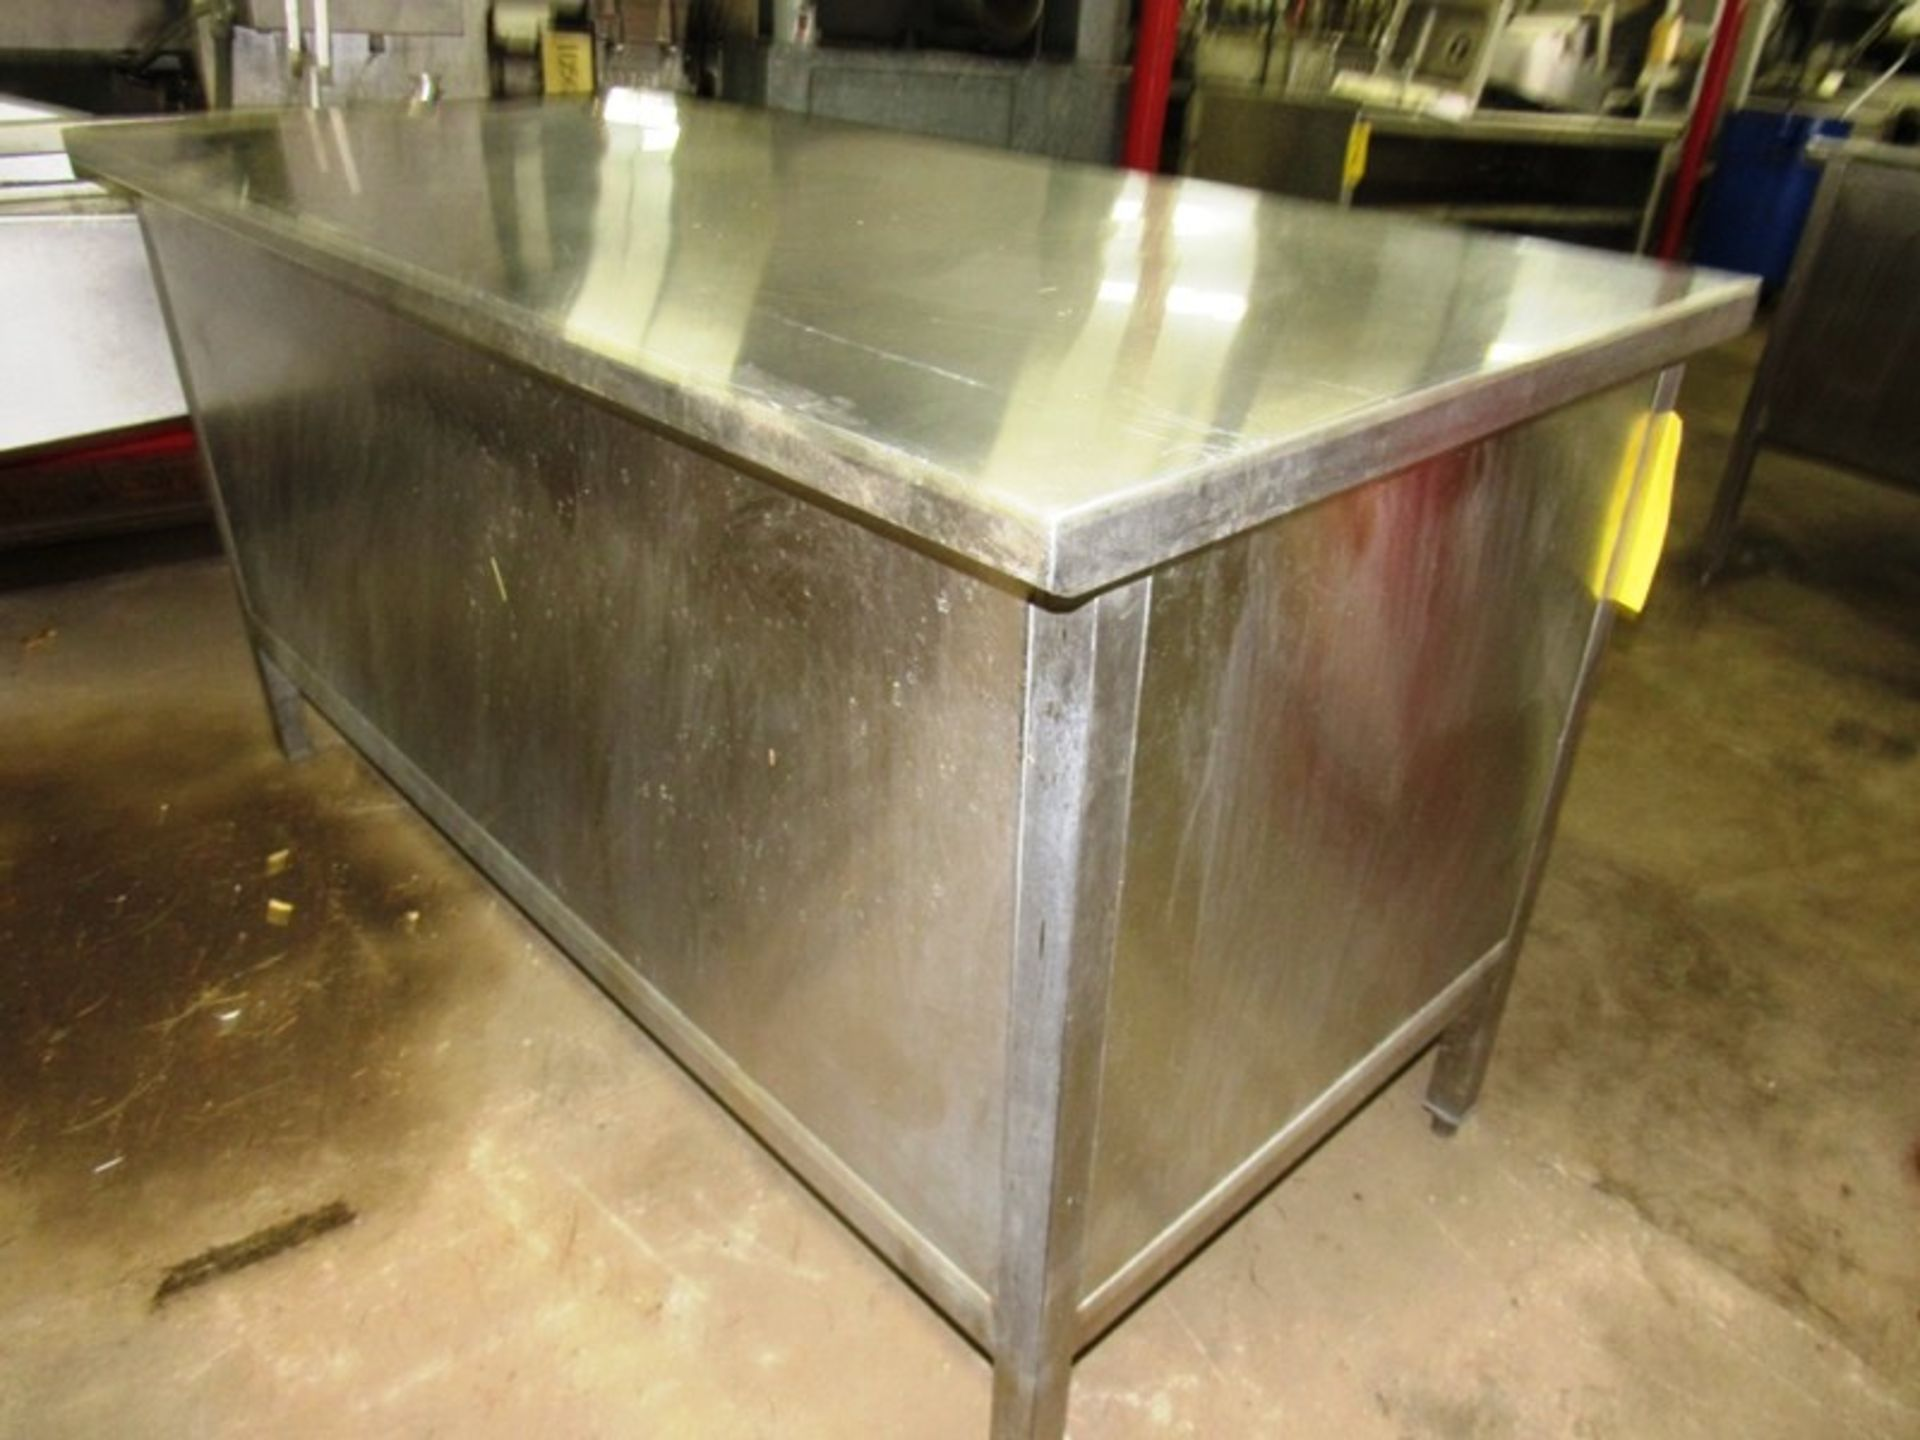 "Stainless Steel Cabinet, 30"" W X 5' L X 36"" T - Image 3 of 3"